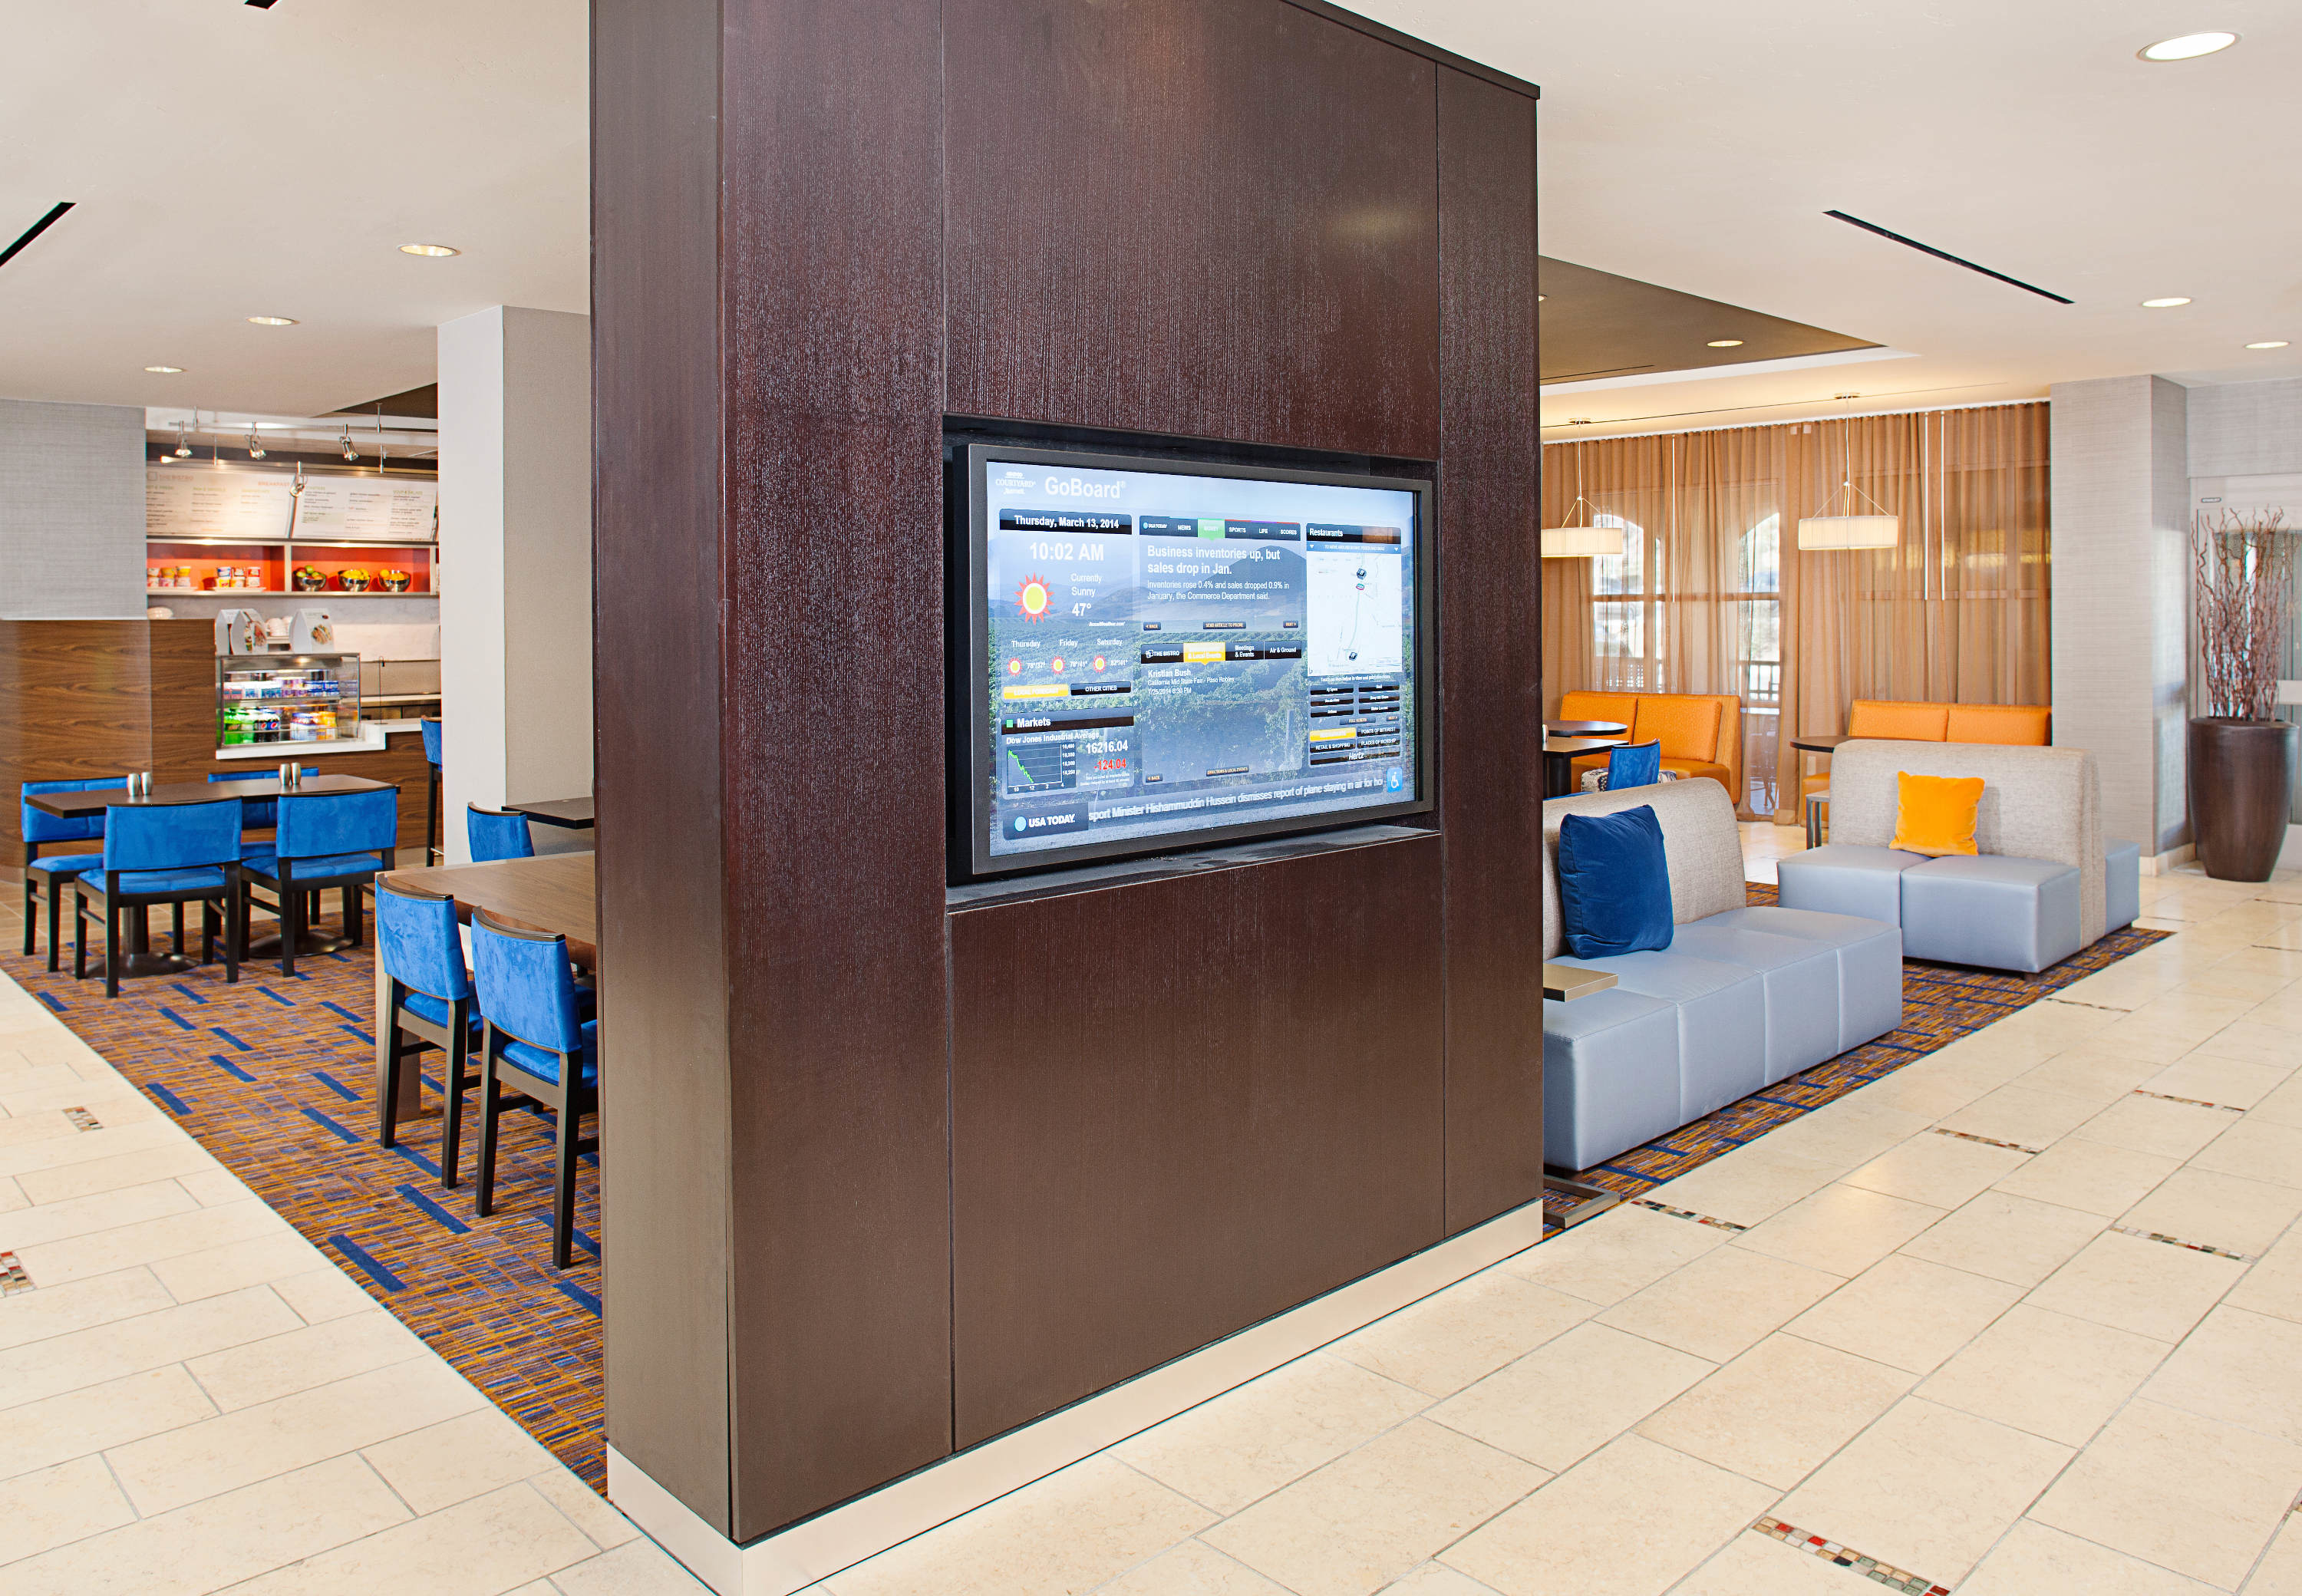 Courtyard by Marriott Paso Robles image 15